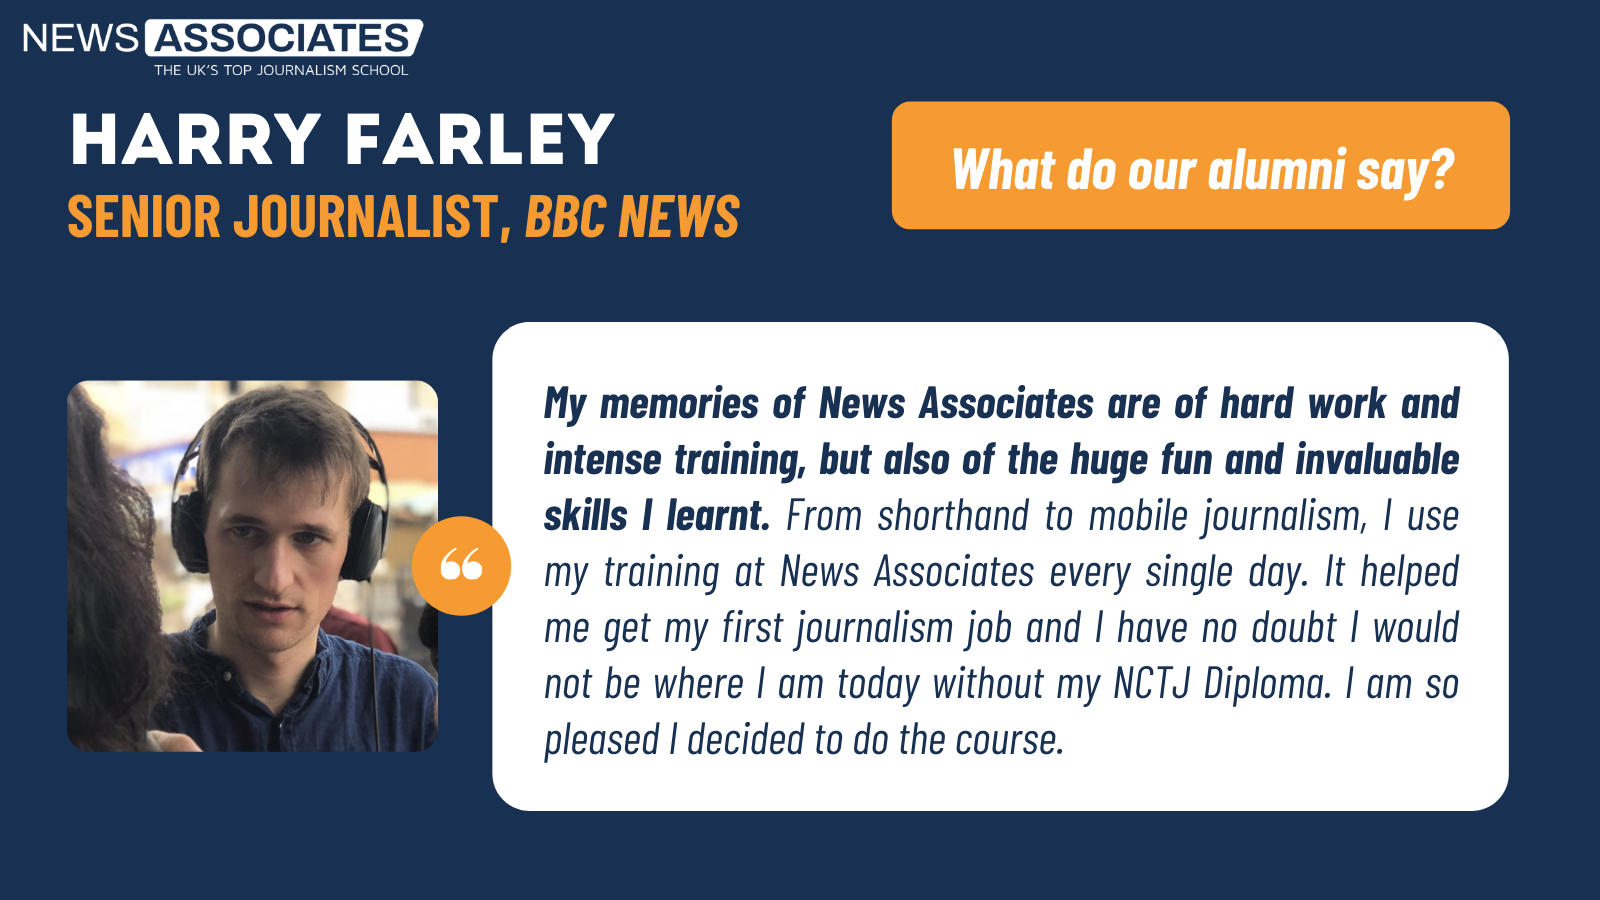 Harry Farley, senior BBC reporter's testimonial: My memories of News Associates are of hard work and intense training, but also of the huge fun and invaluable skills I learnt. From shorthand to mobile journalism, I use my training at News Associates every single day. It helped me get my first journalism job and I have no doubt I would not be where I am today without my NCTJ Diploma. I am so pleased I decided to do the course.